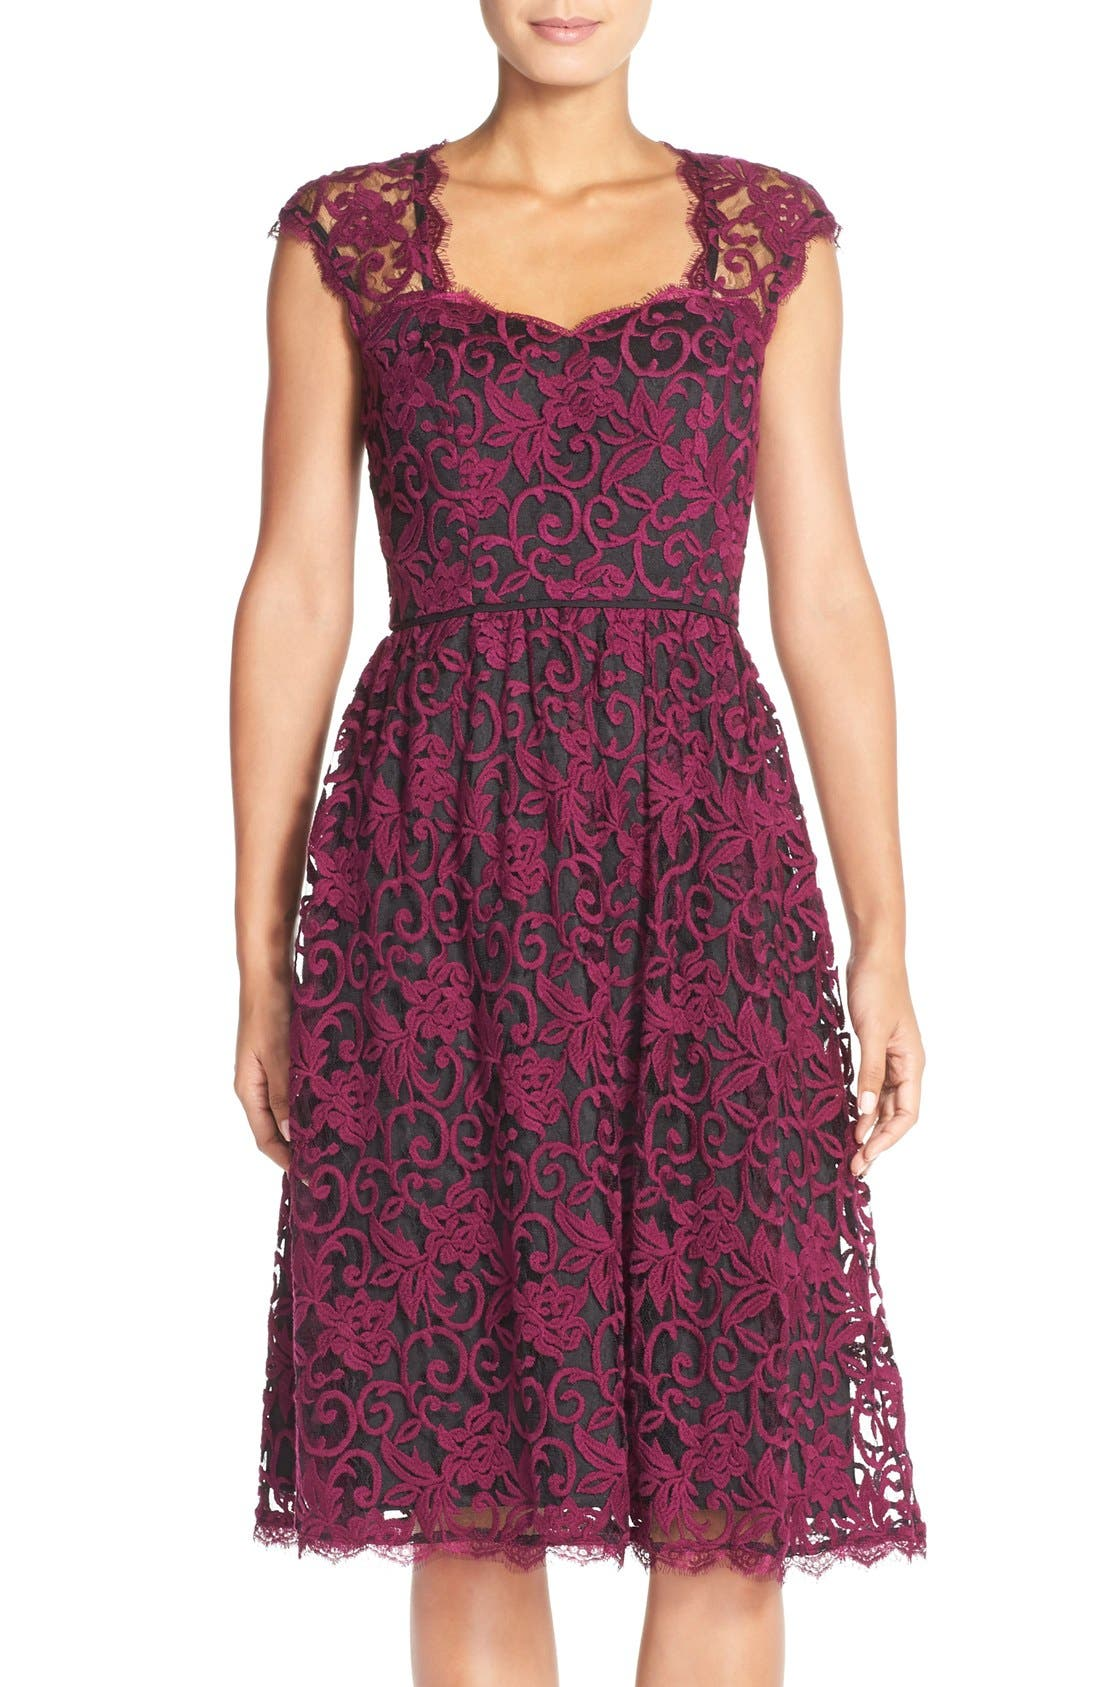 Alternate Image 1 Selected - Adrianna PapellIllusion Lace Fit & Flare Dress